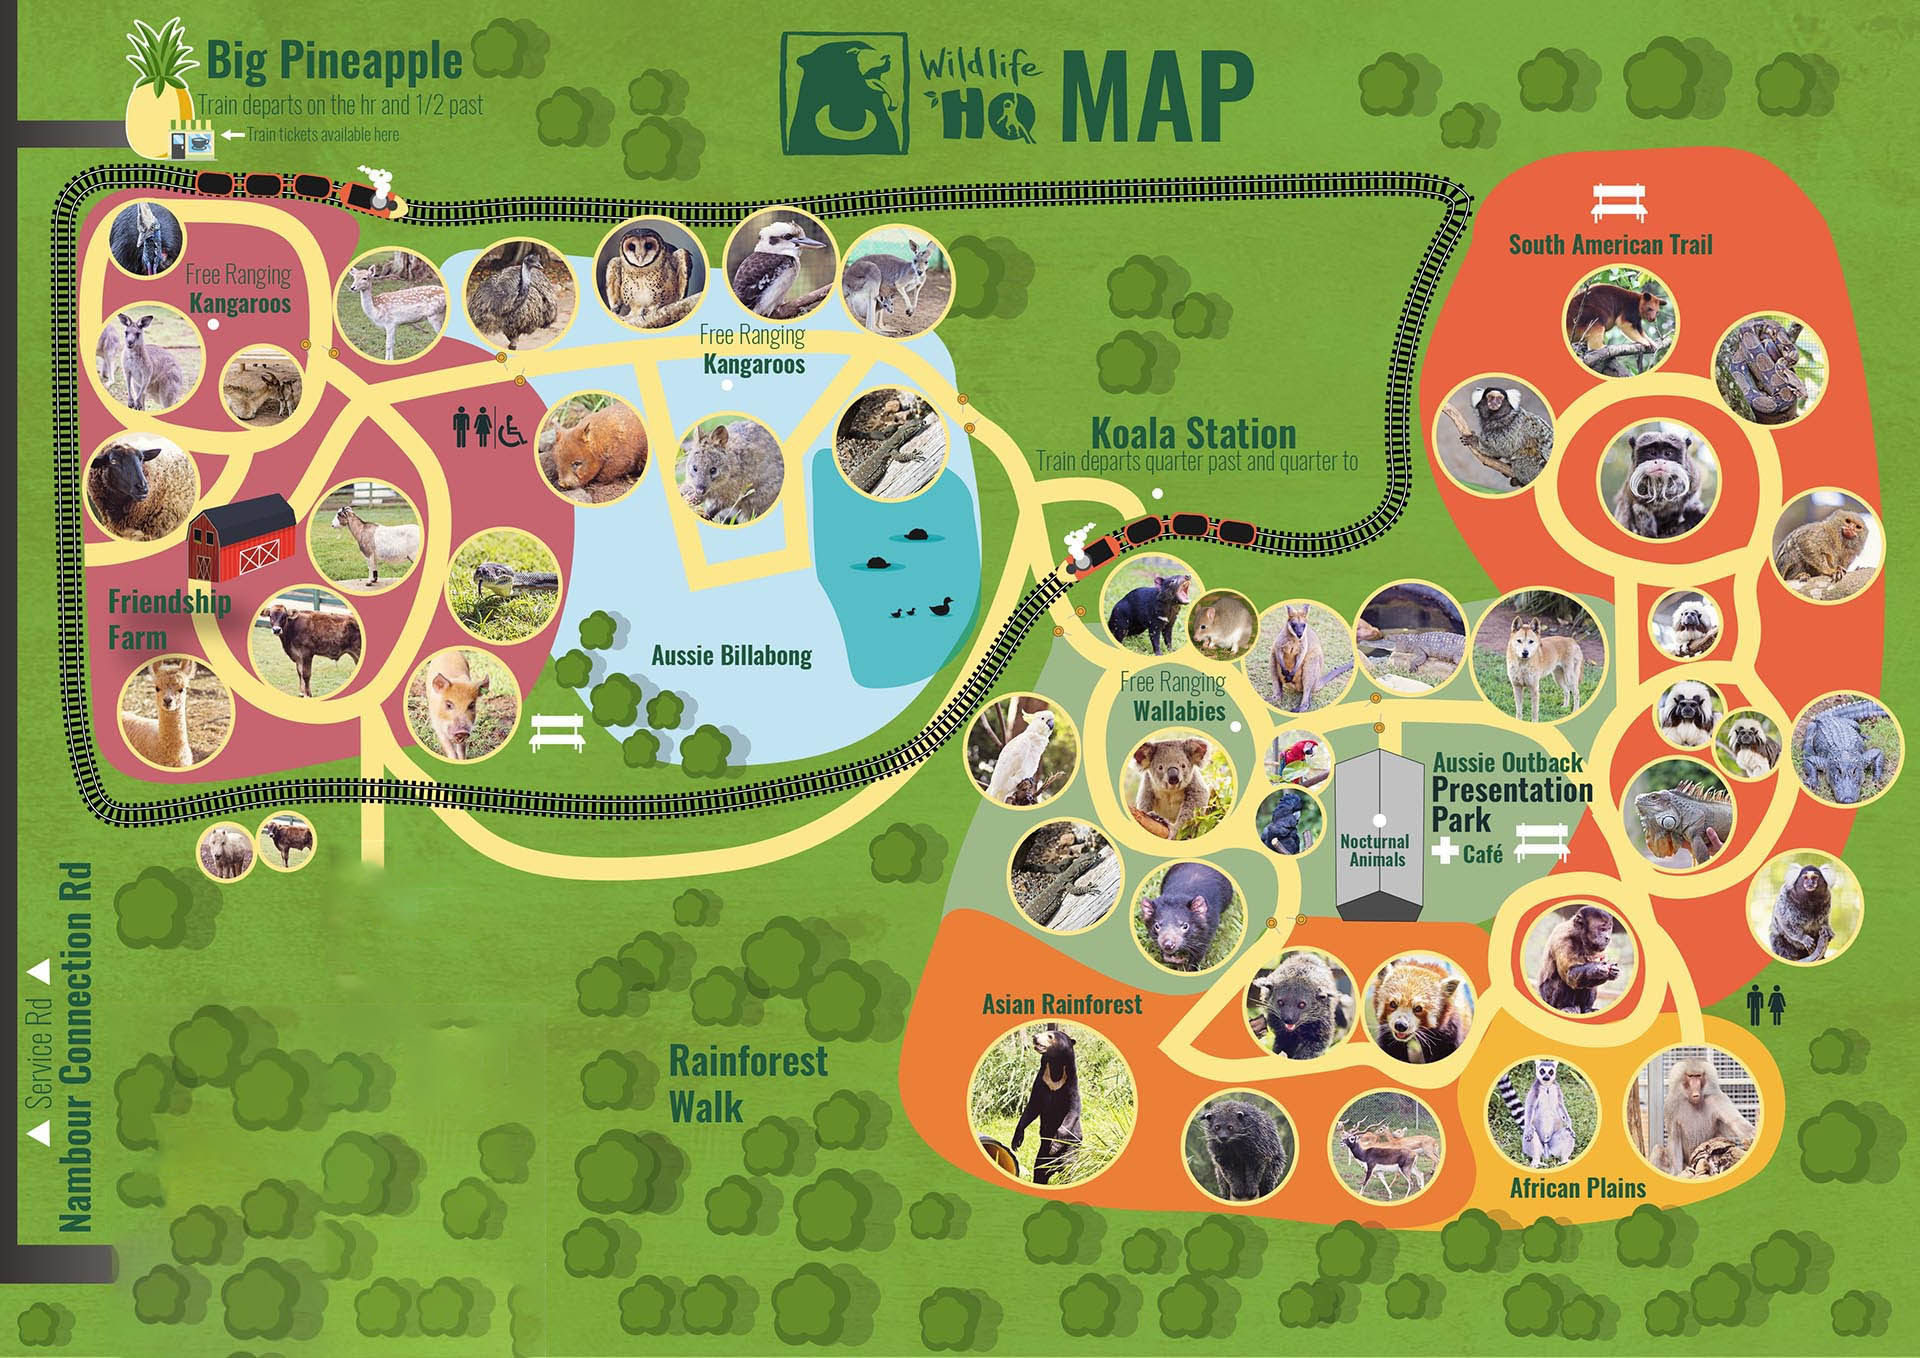 Australia Zoo Map 2018.Plan Your Visit Wildlife Hq